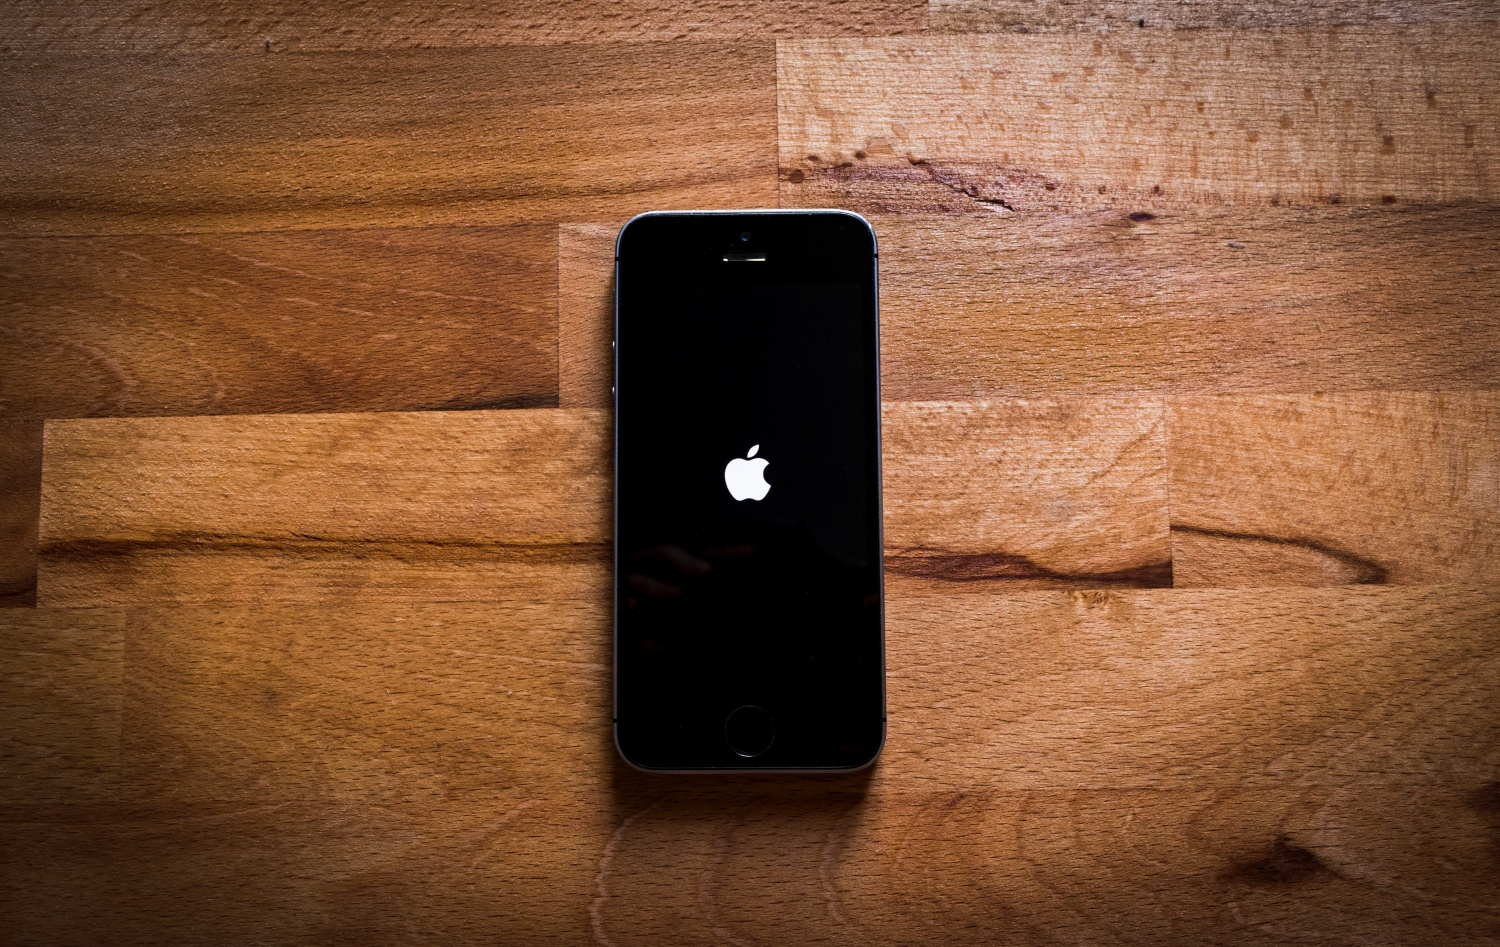 spy on iphone without installing